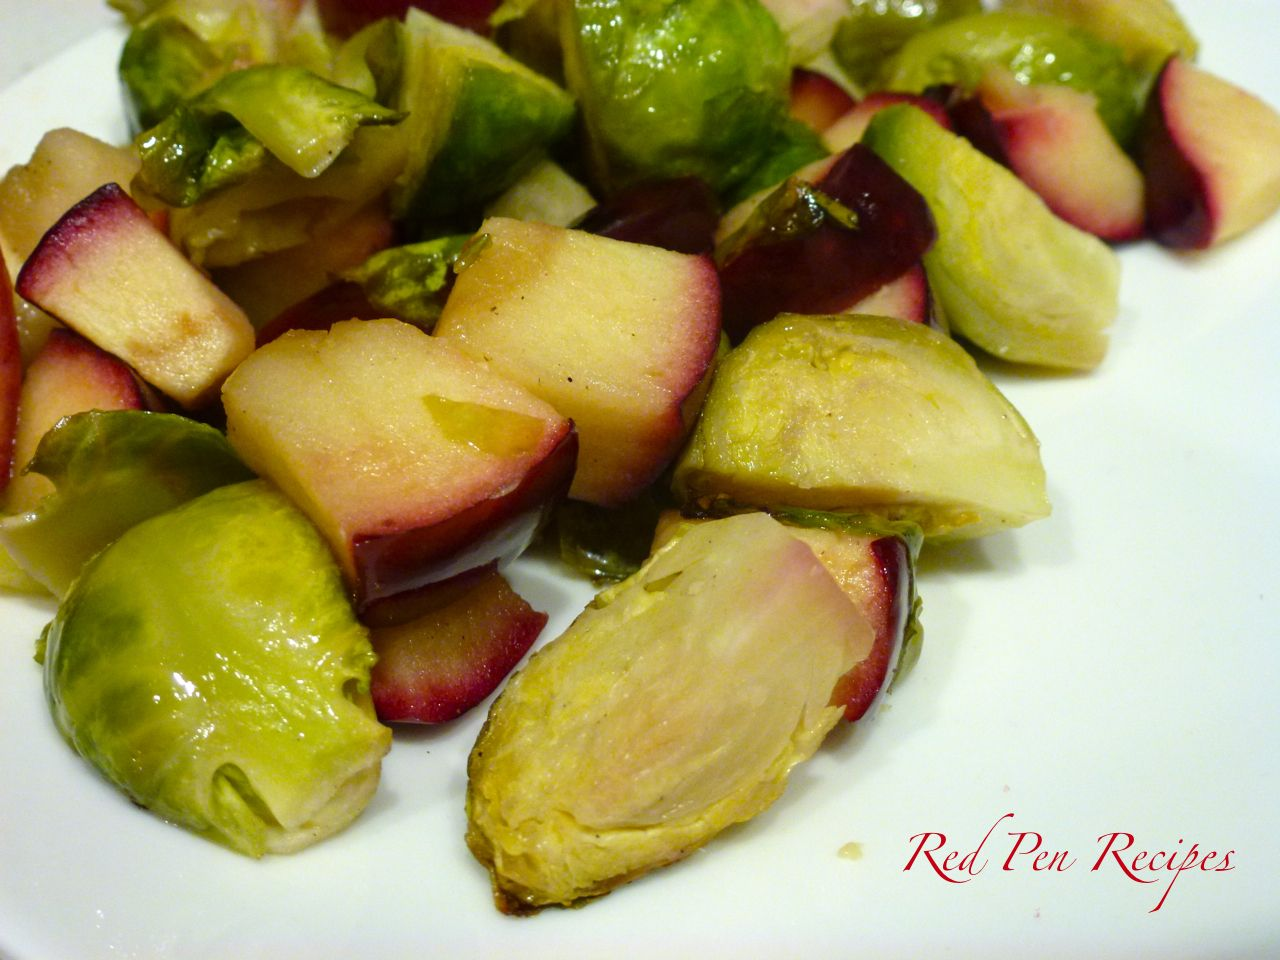 Roasted brussels sprouts with apples